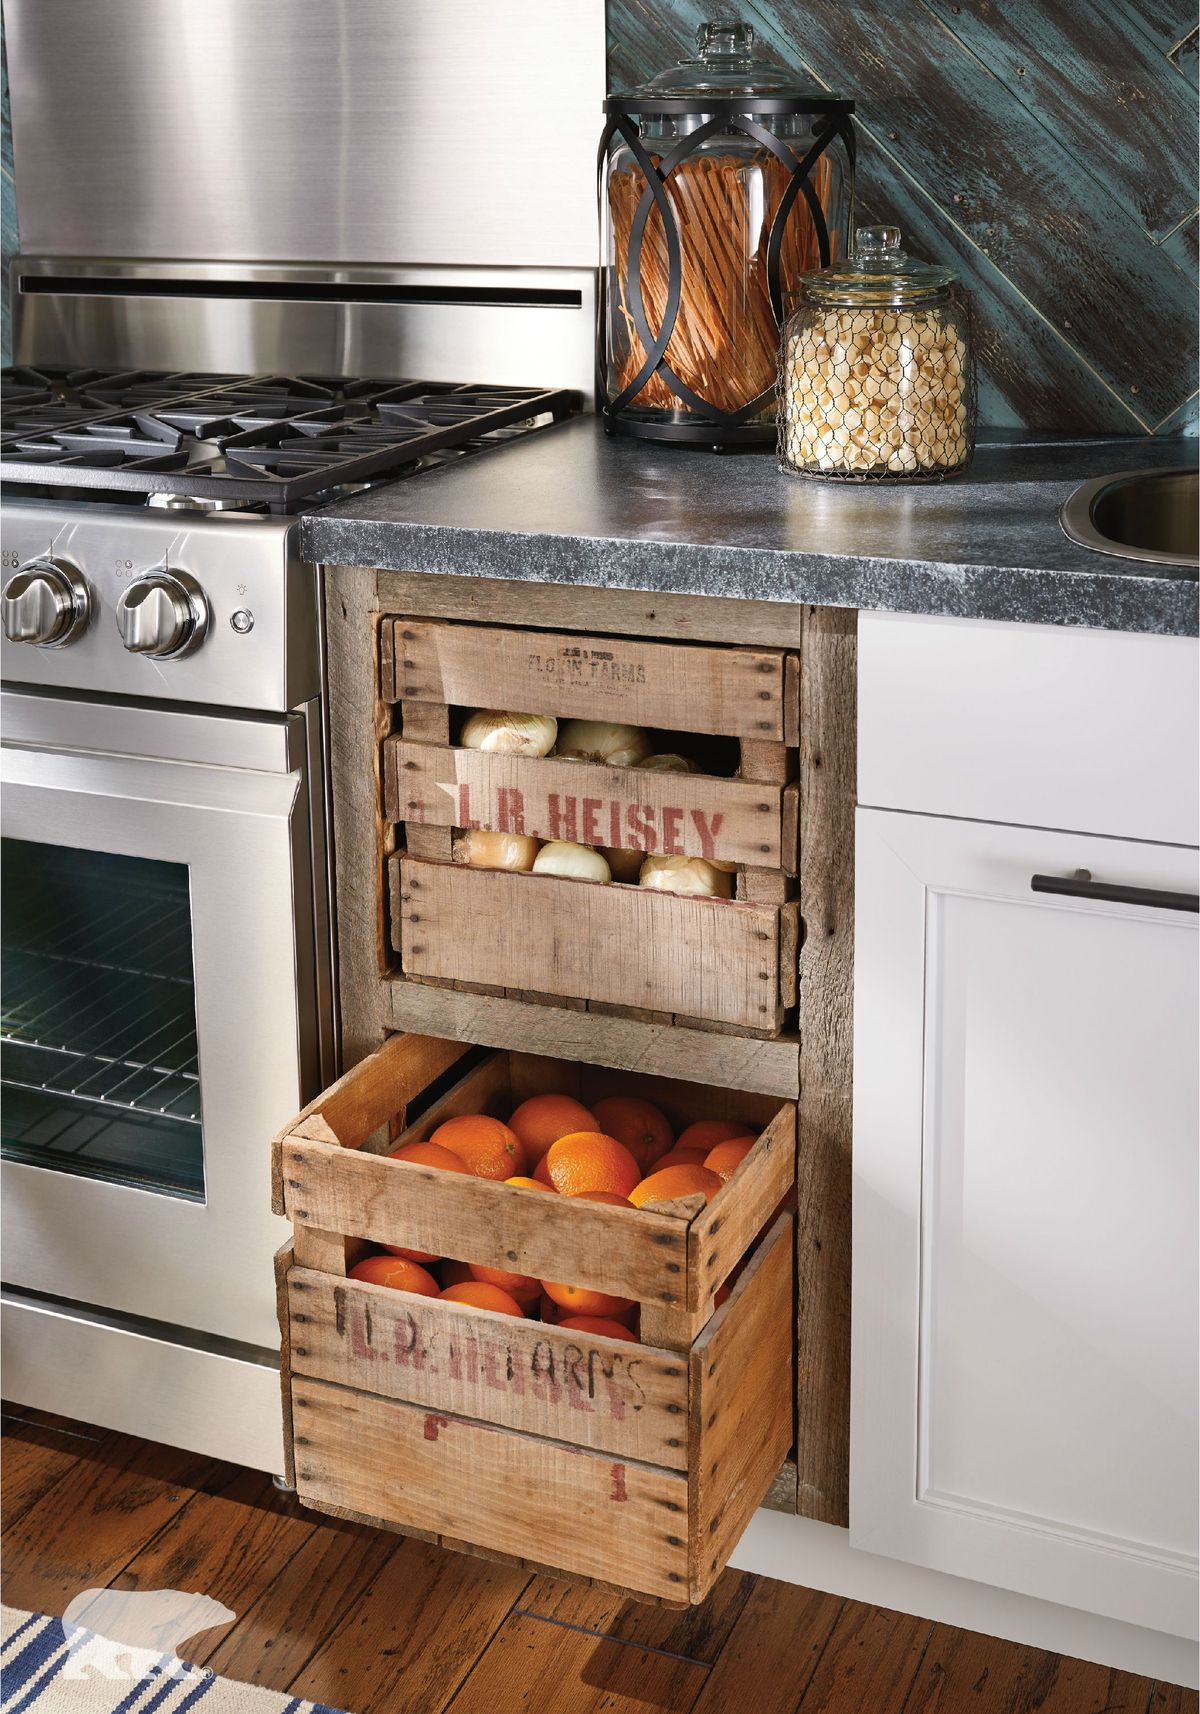 Clever Crate Drawers for Storing Produce